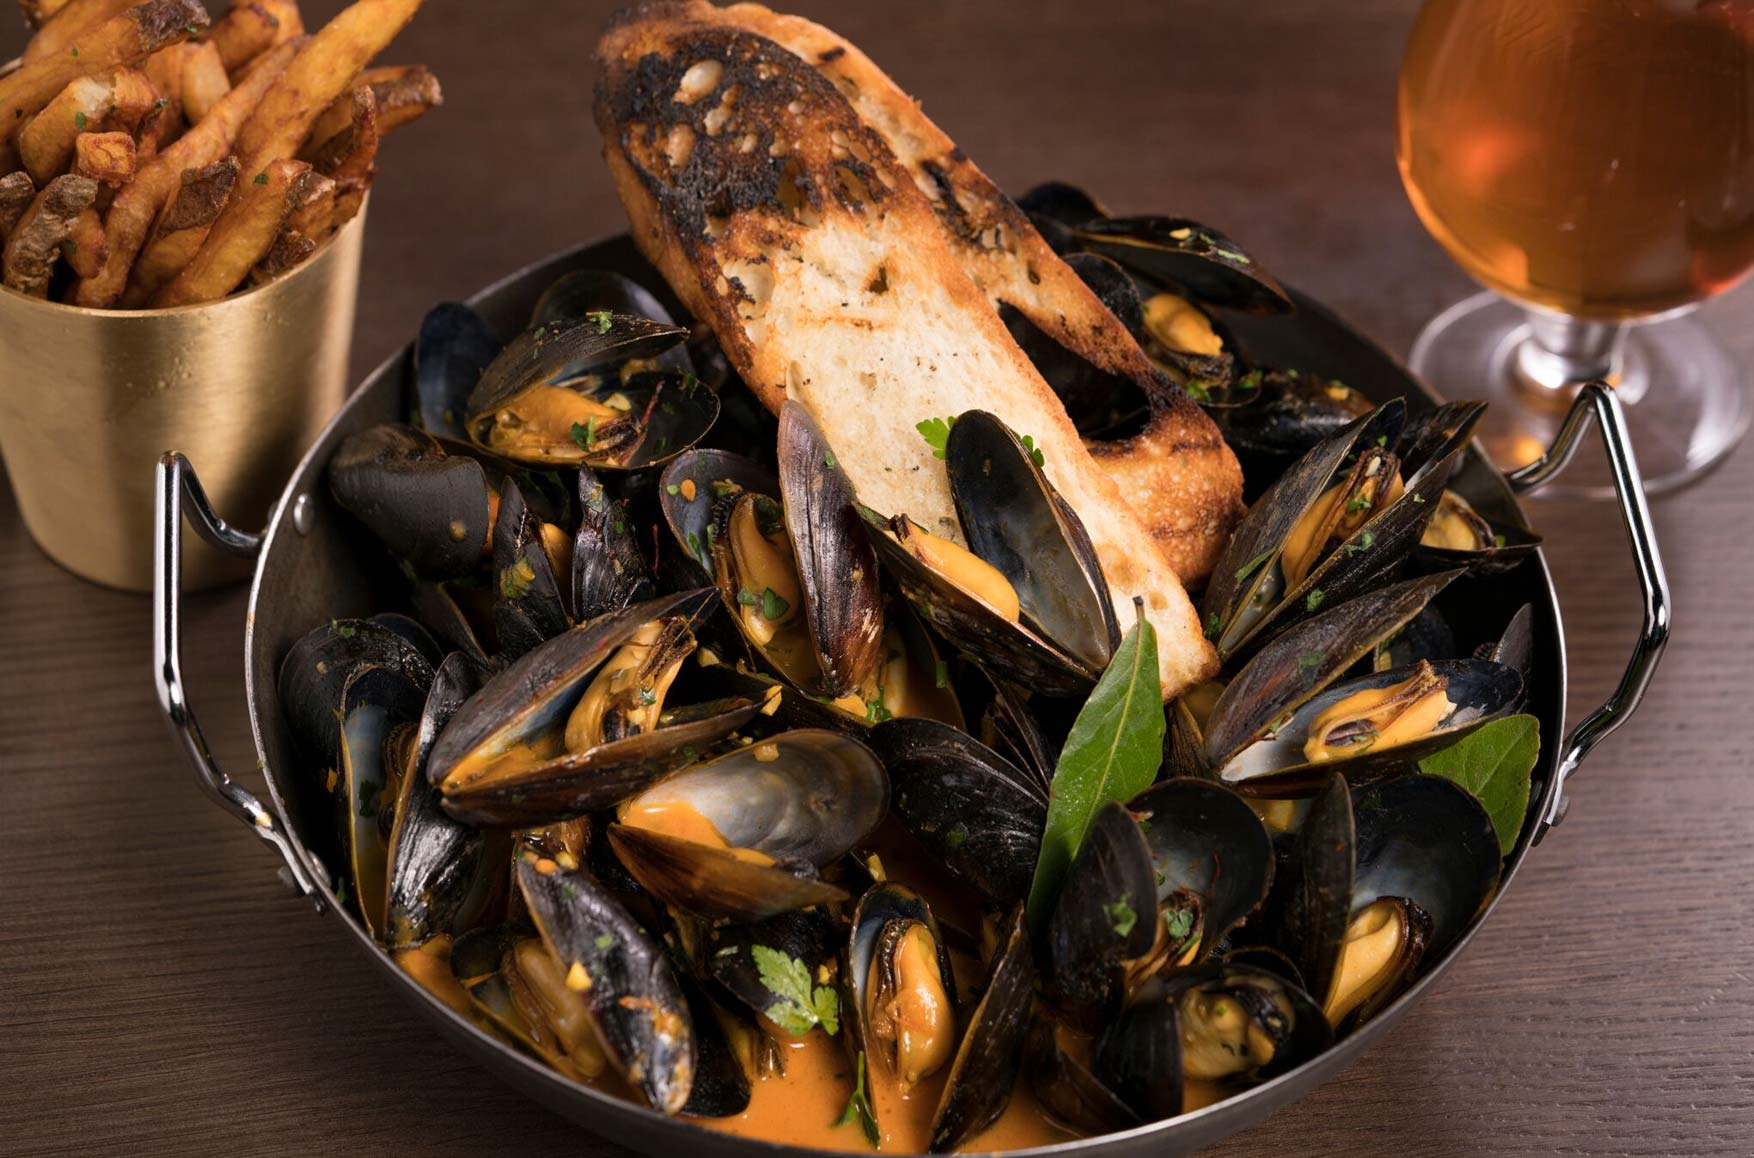 Mussels and toasted bread with beer